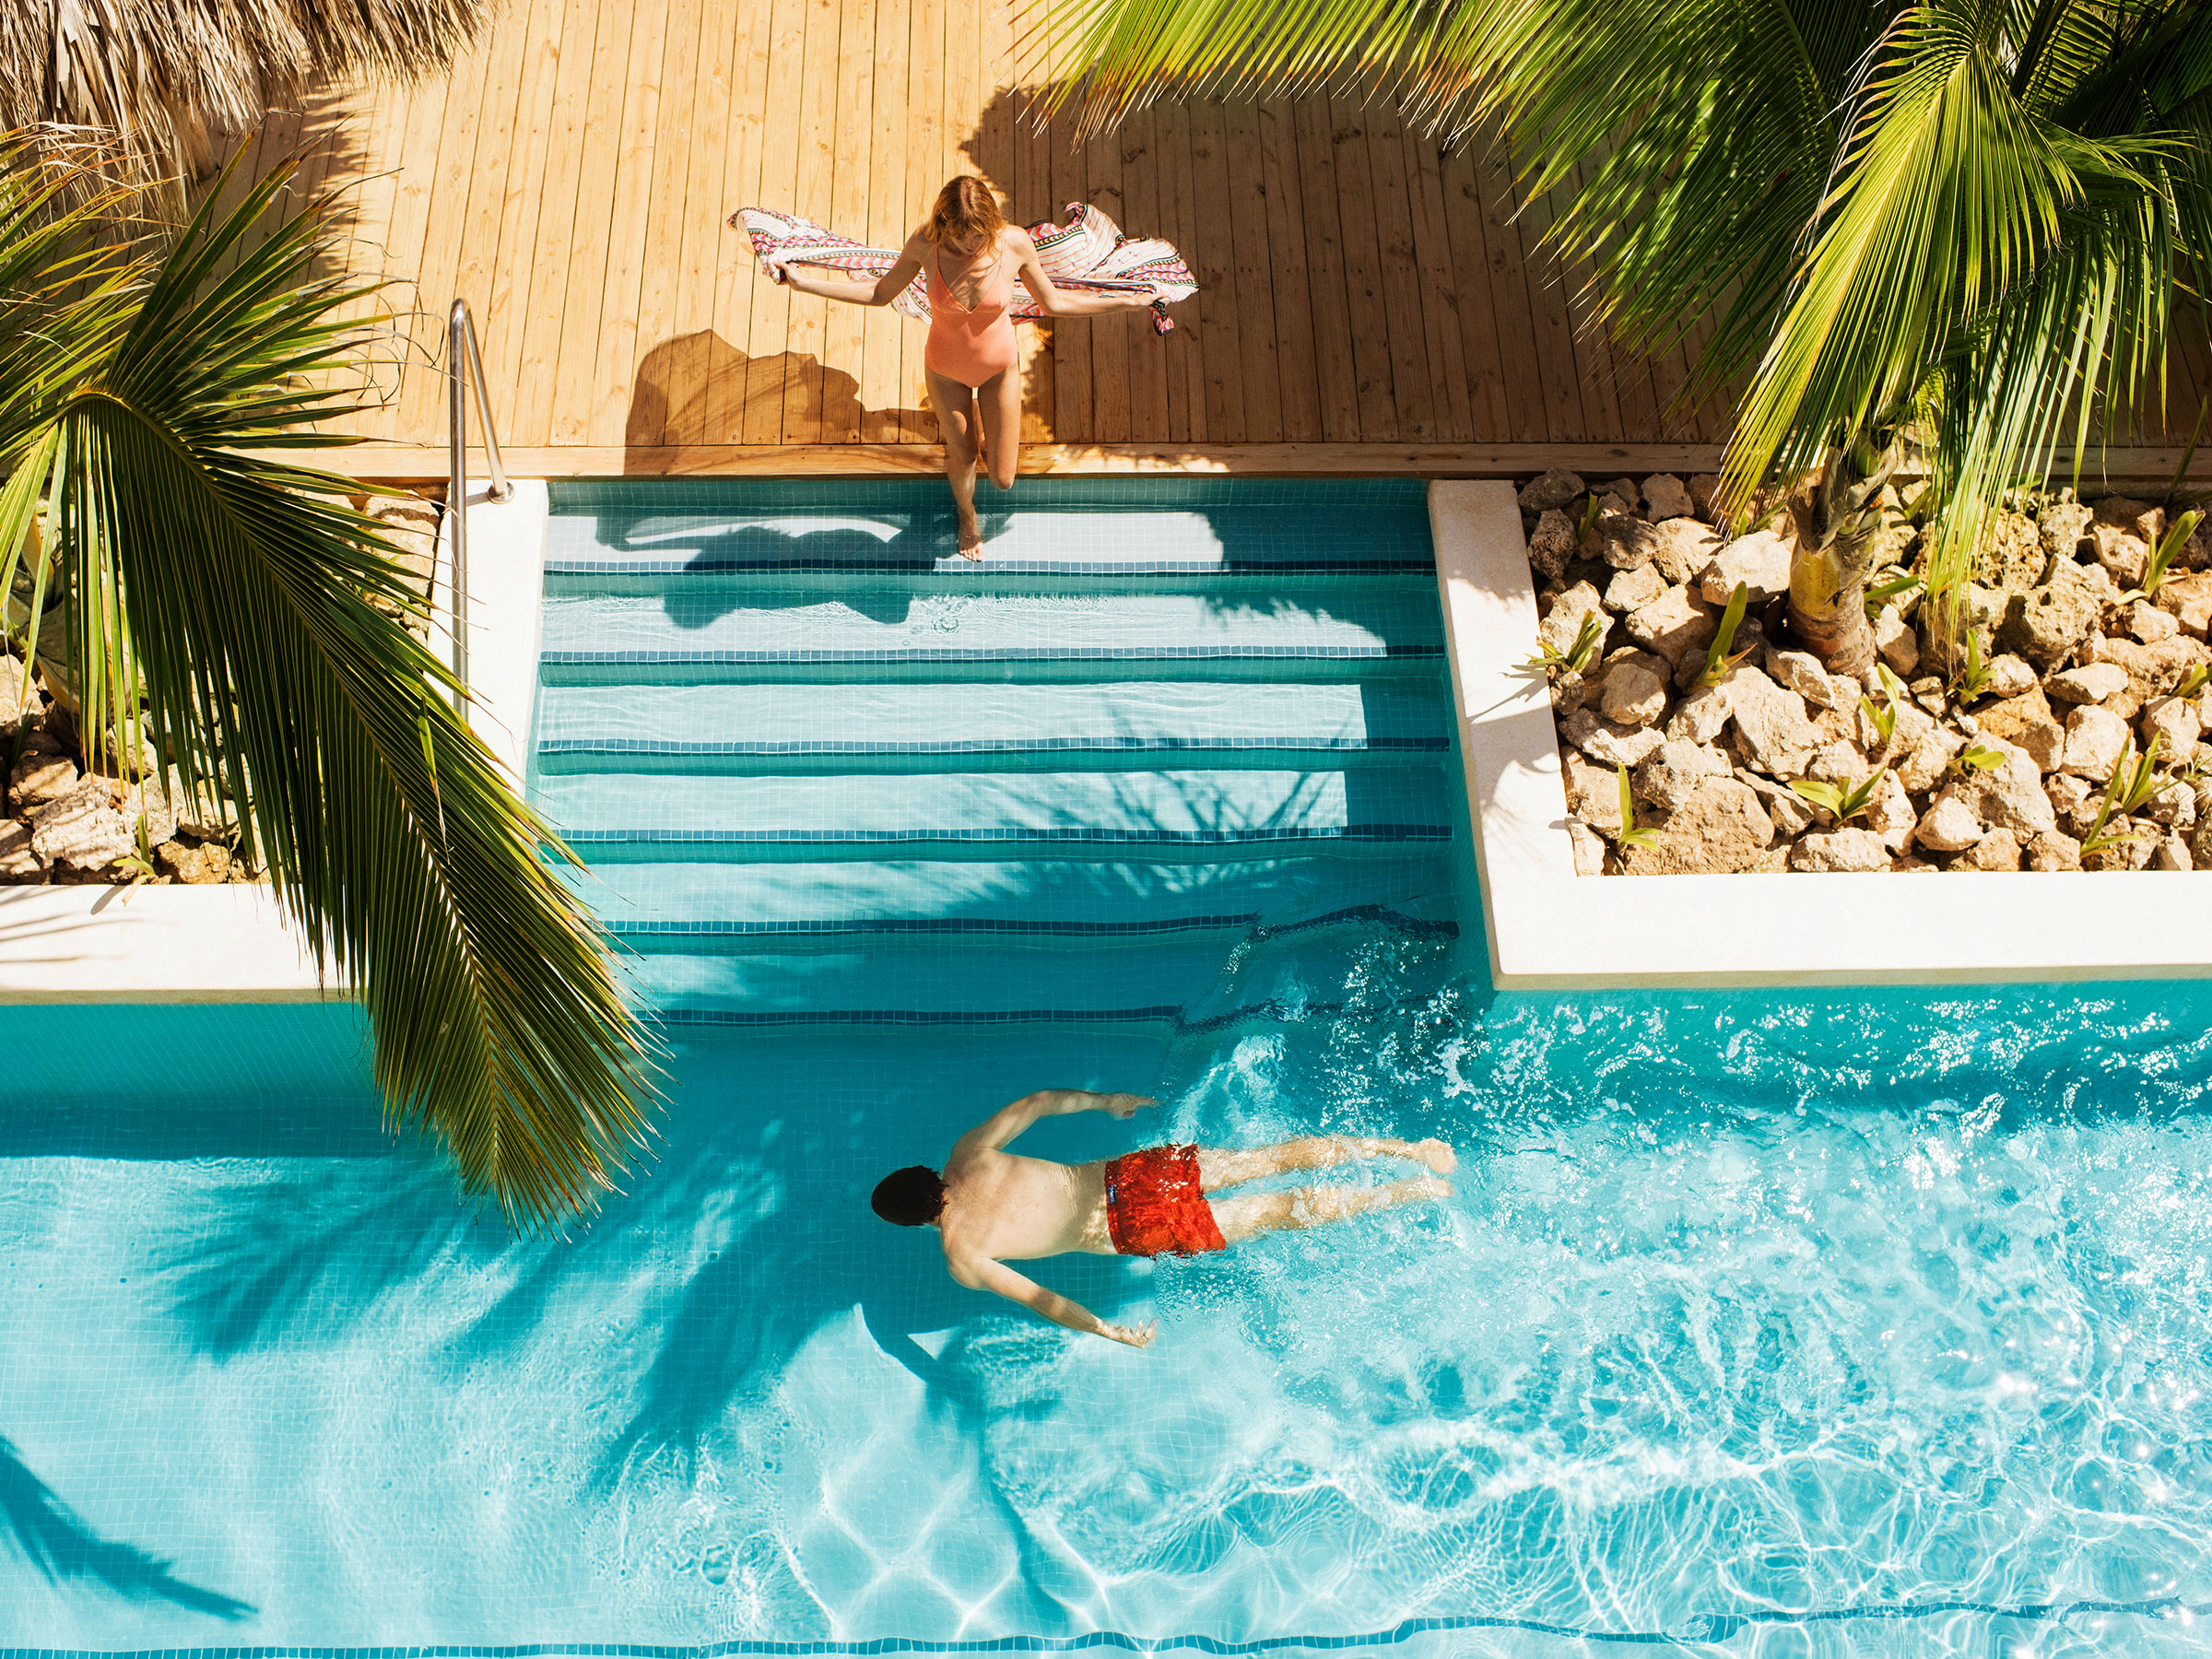 Get the Best All Inclusive Vacation Deals in Punta Cana When You Book Early